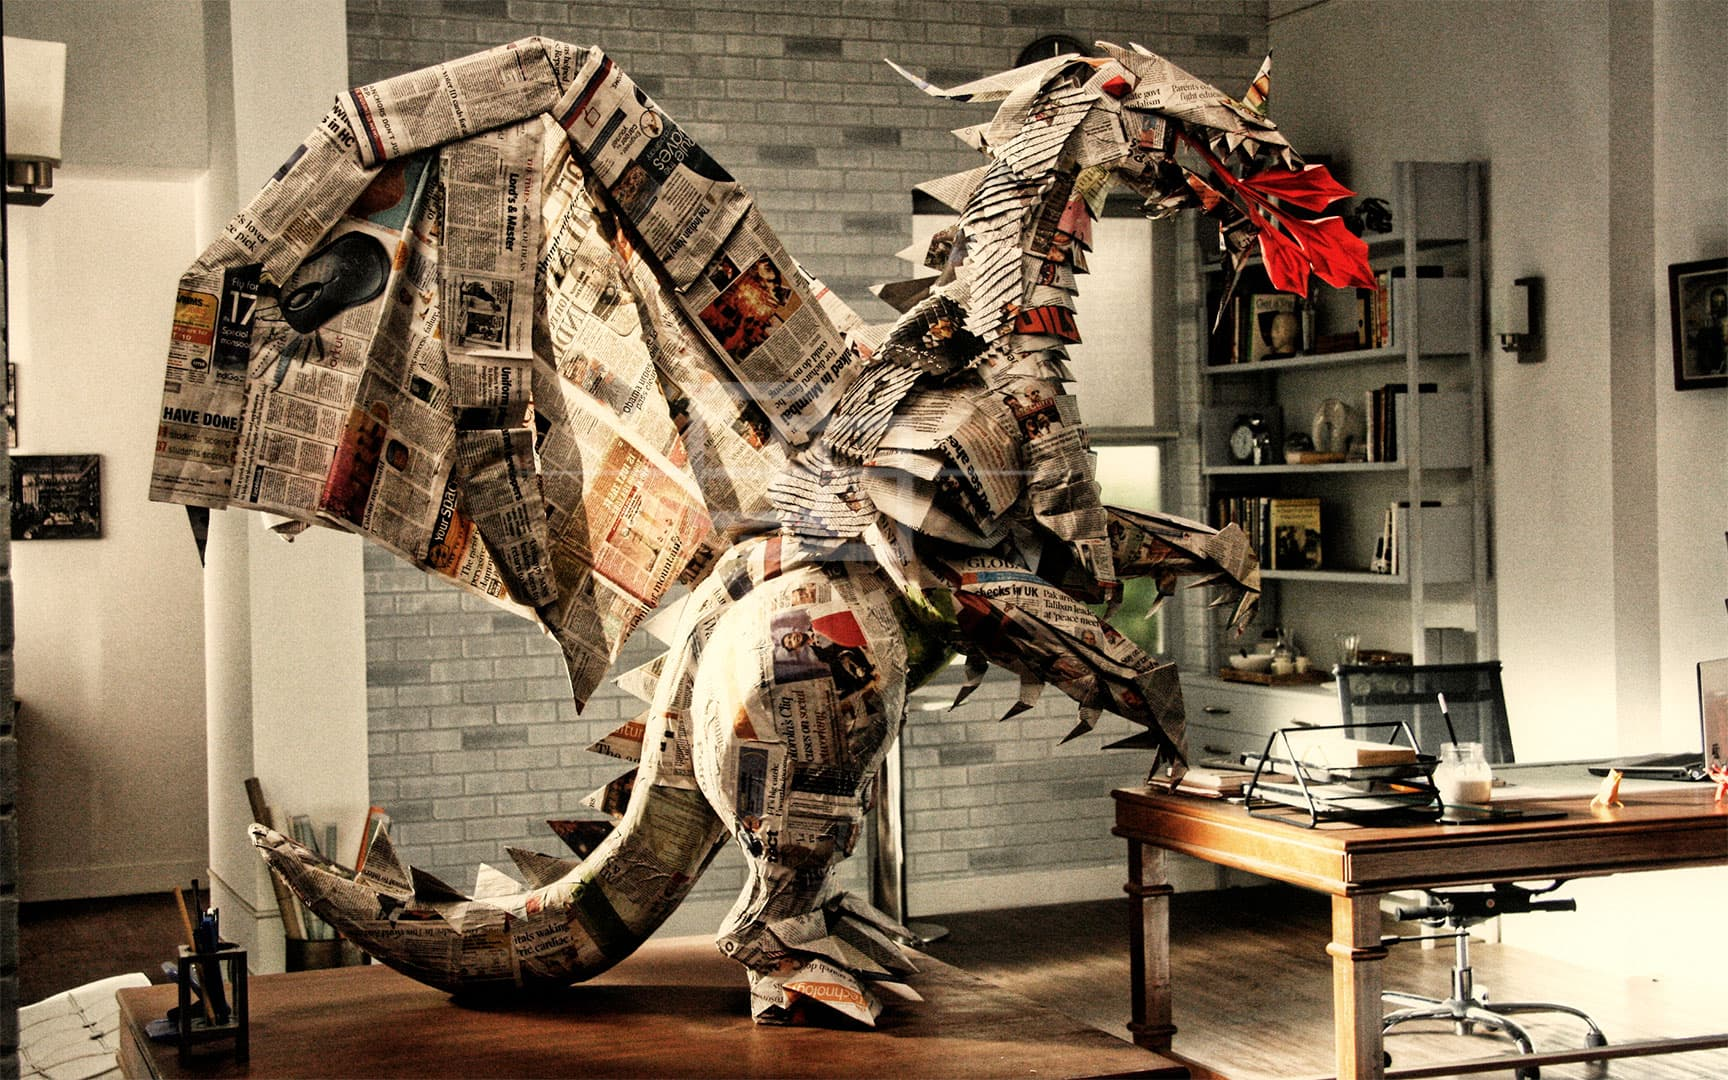 Dell Origami Dragon by Himanshu Mumbai India orukami